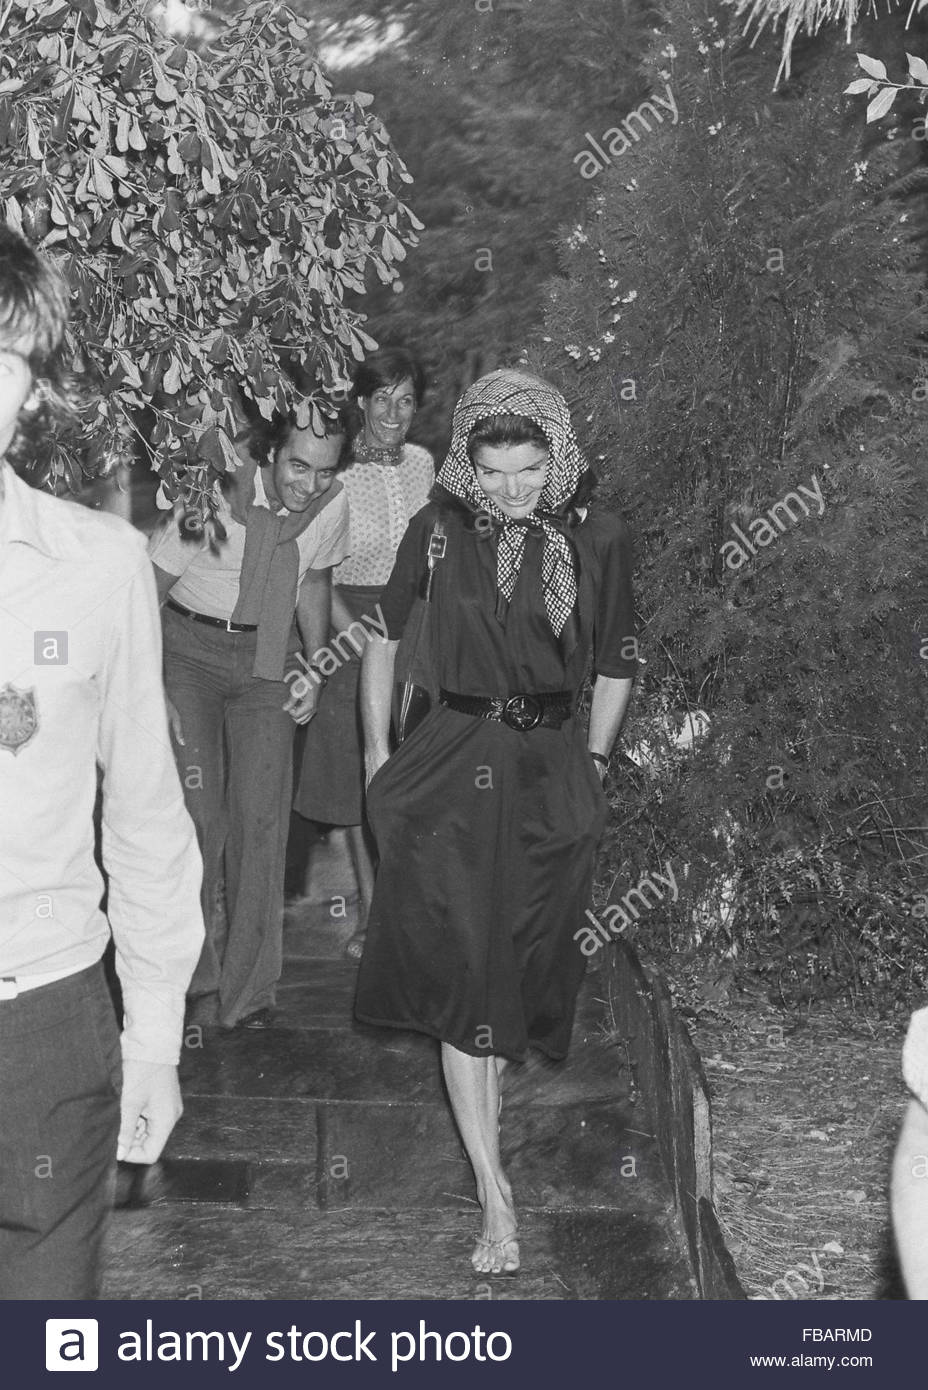 Jacqueline Onassis at the ancient Greek Theatre in Epidauras, southern Greece - 03 Aug 1975 - Stock Image